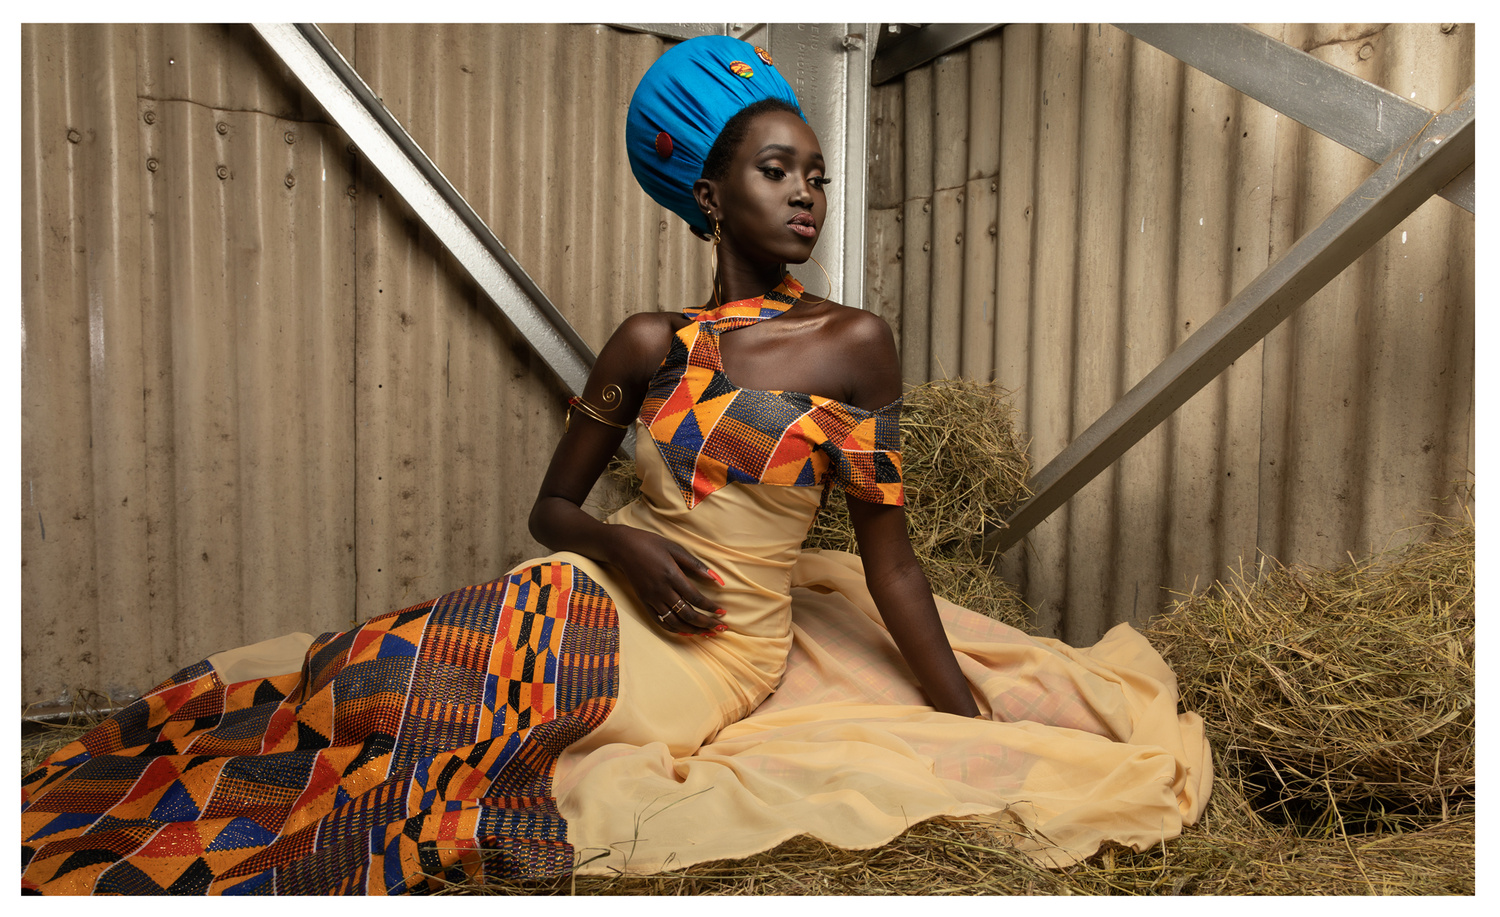 African Style by Gerald Masolia